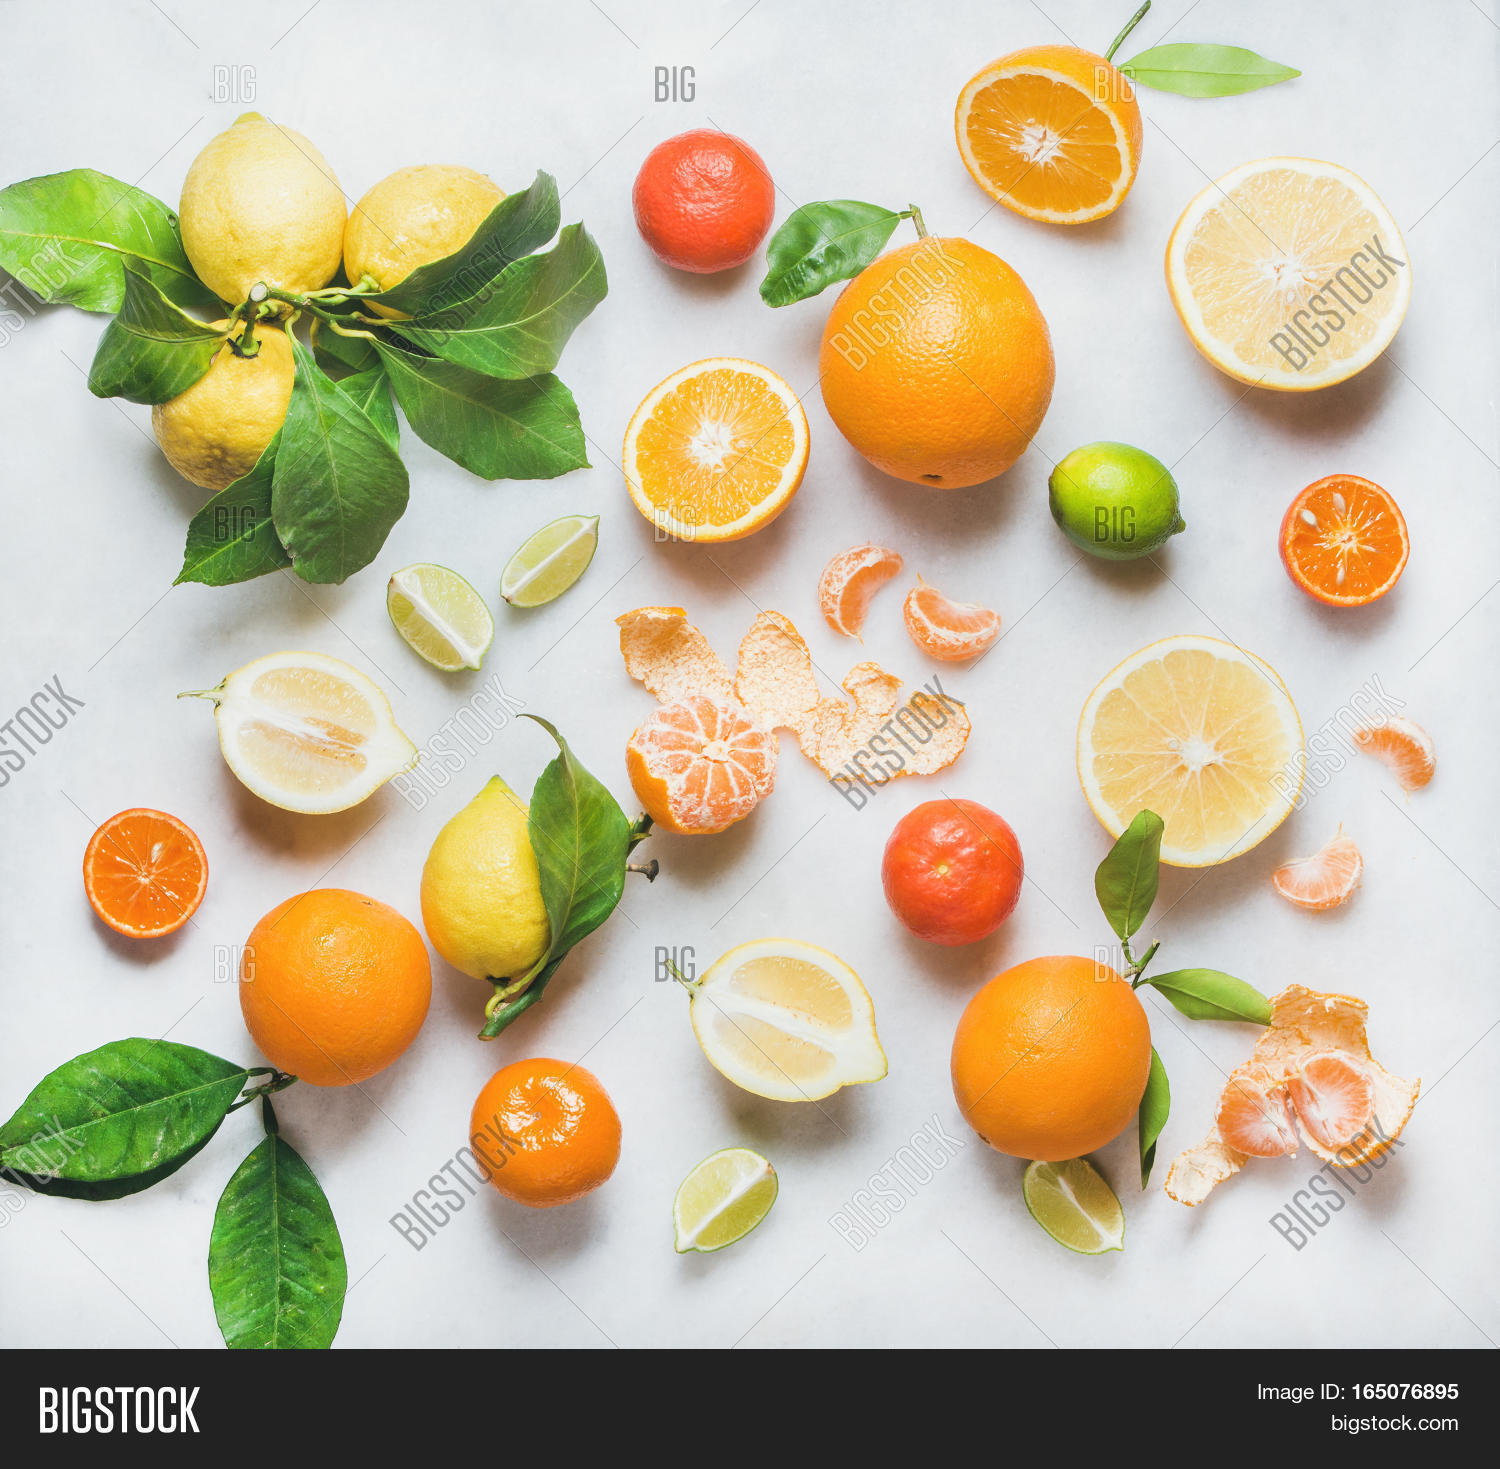 Variety Of Fresh Citrus Fruits For Making Juice Or Smoothie Over Light Grey Marble  Table Background